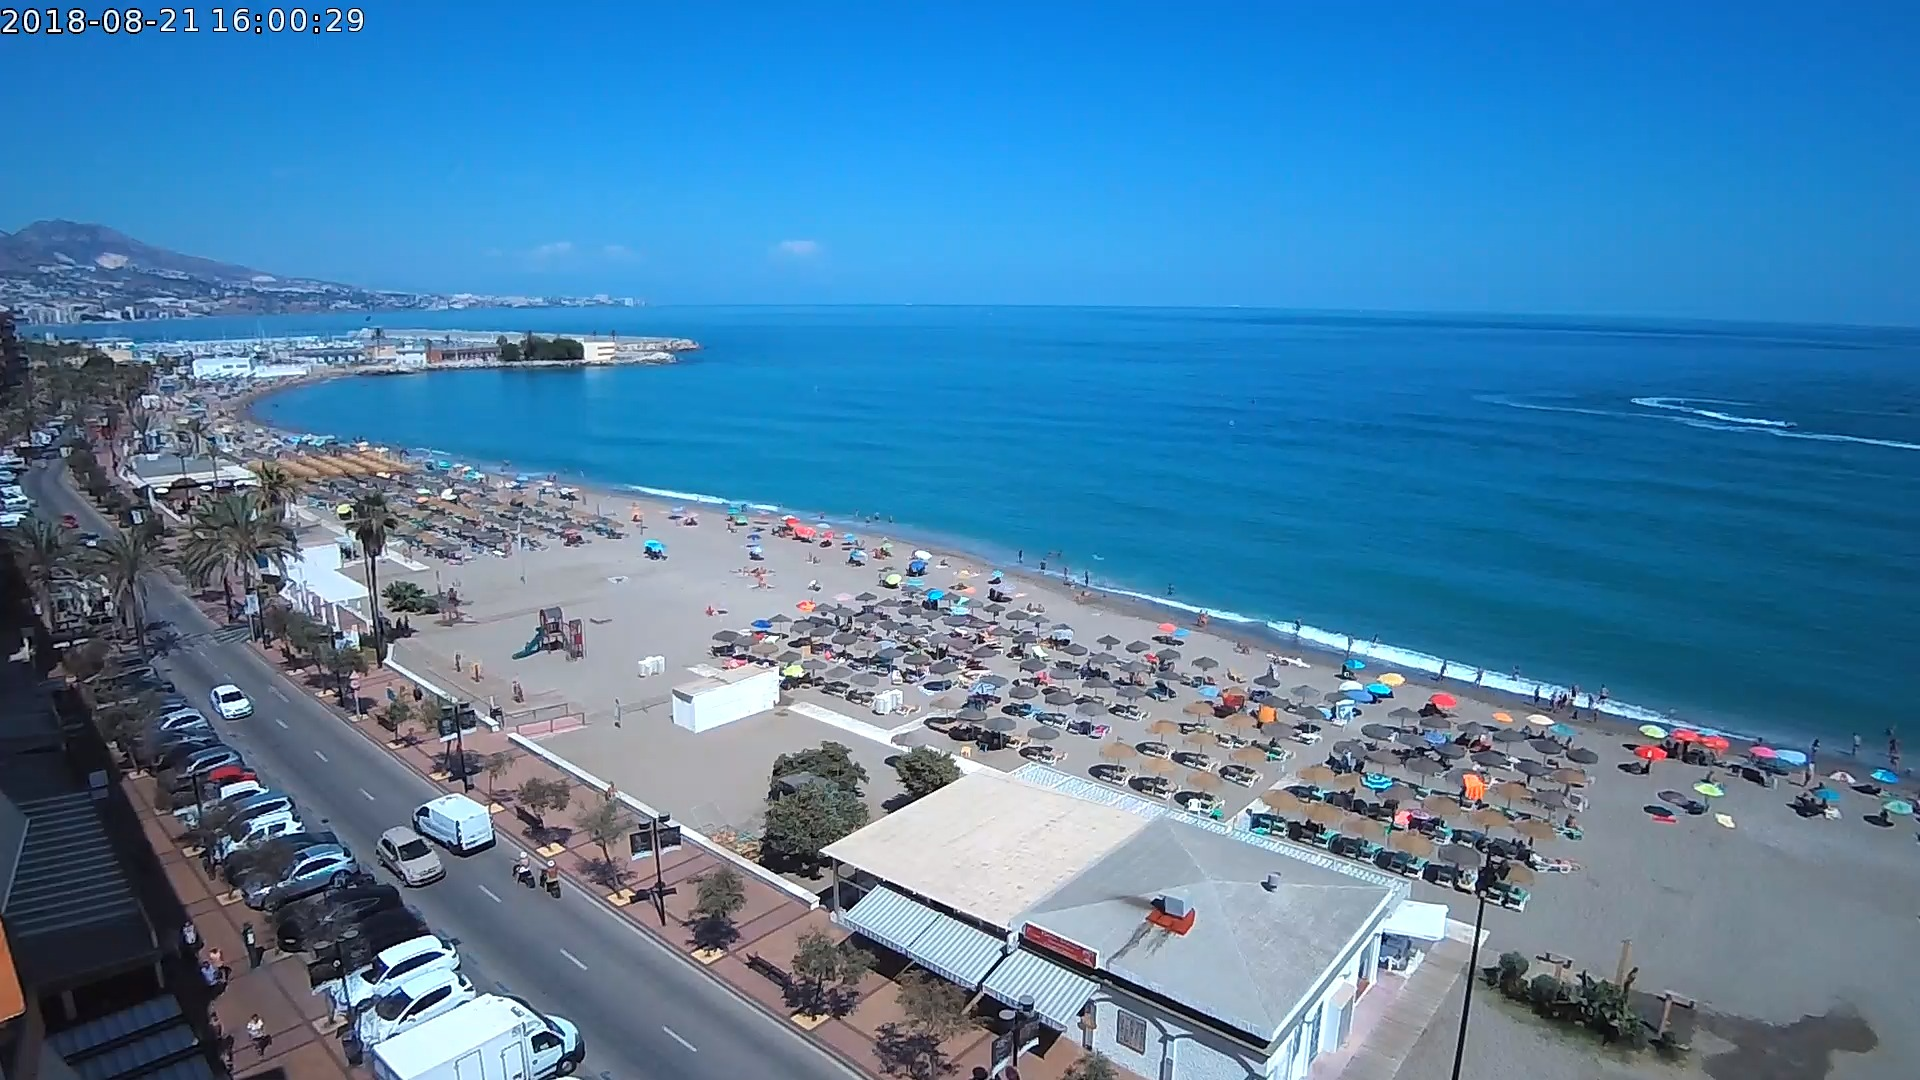 Want To SEE LIVE VIEWS from Fuengirolas Webcams